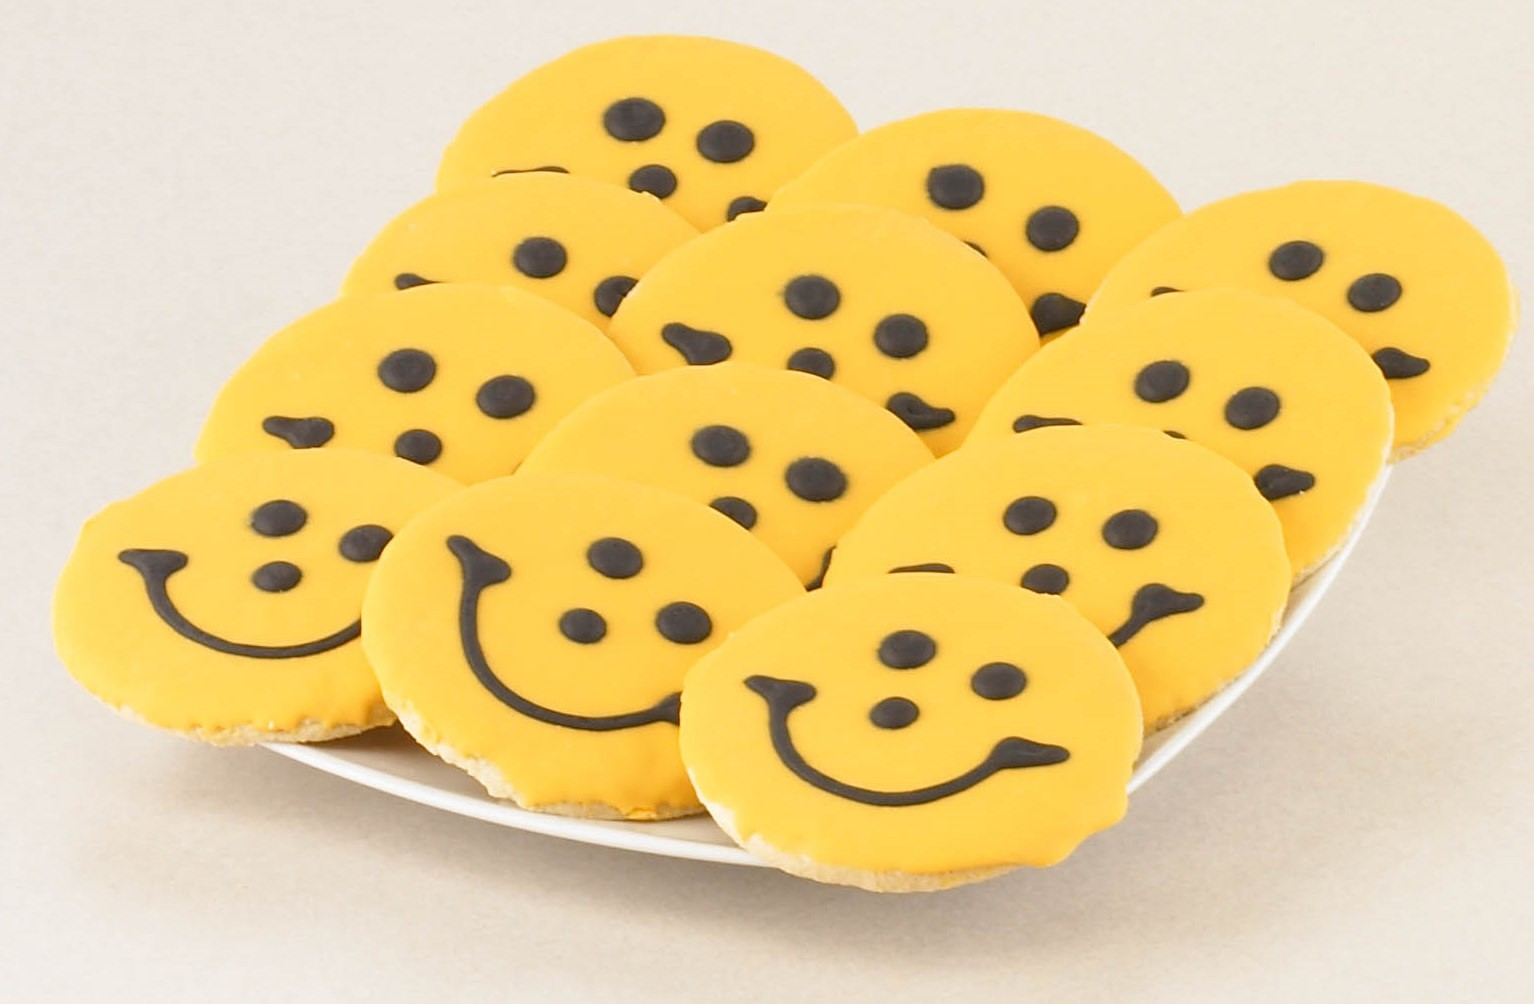 7 Cookie Eating Emoticon Images